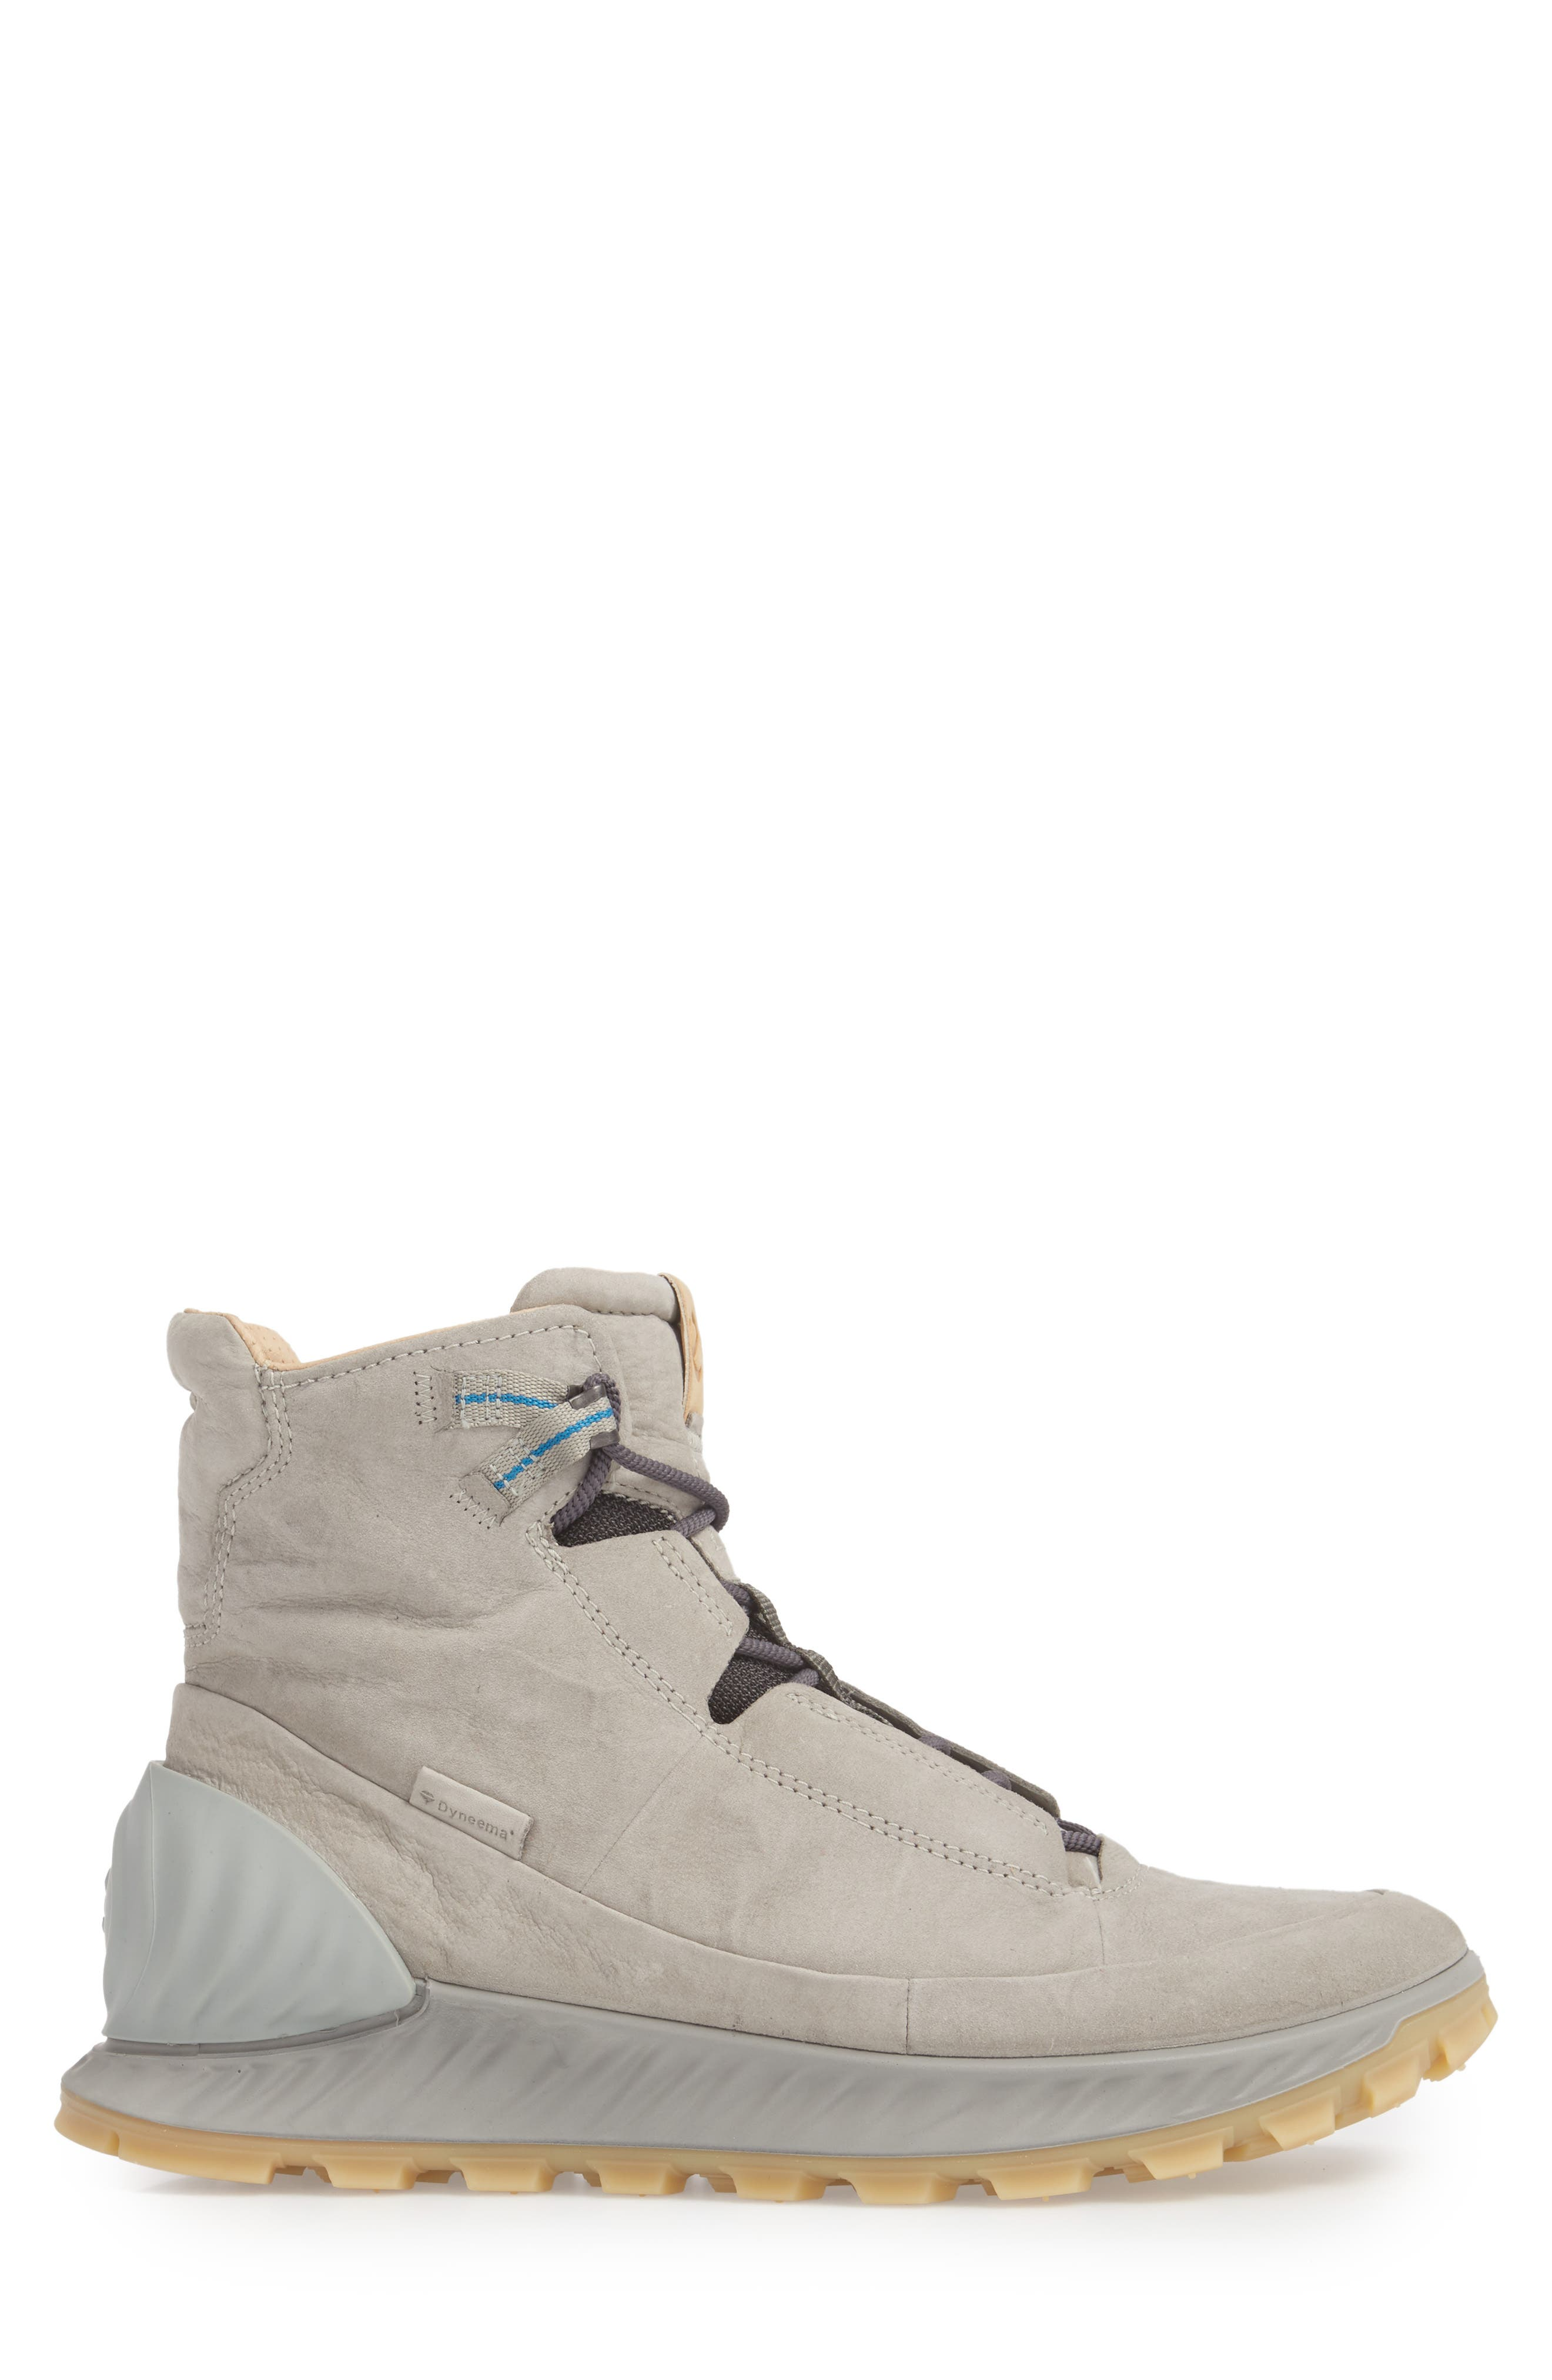 Limited Edition Exostrike Dyneema Sneaker Boot,                             Alternate thumbnail 3, color,                             Wild Dove Leather